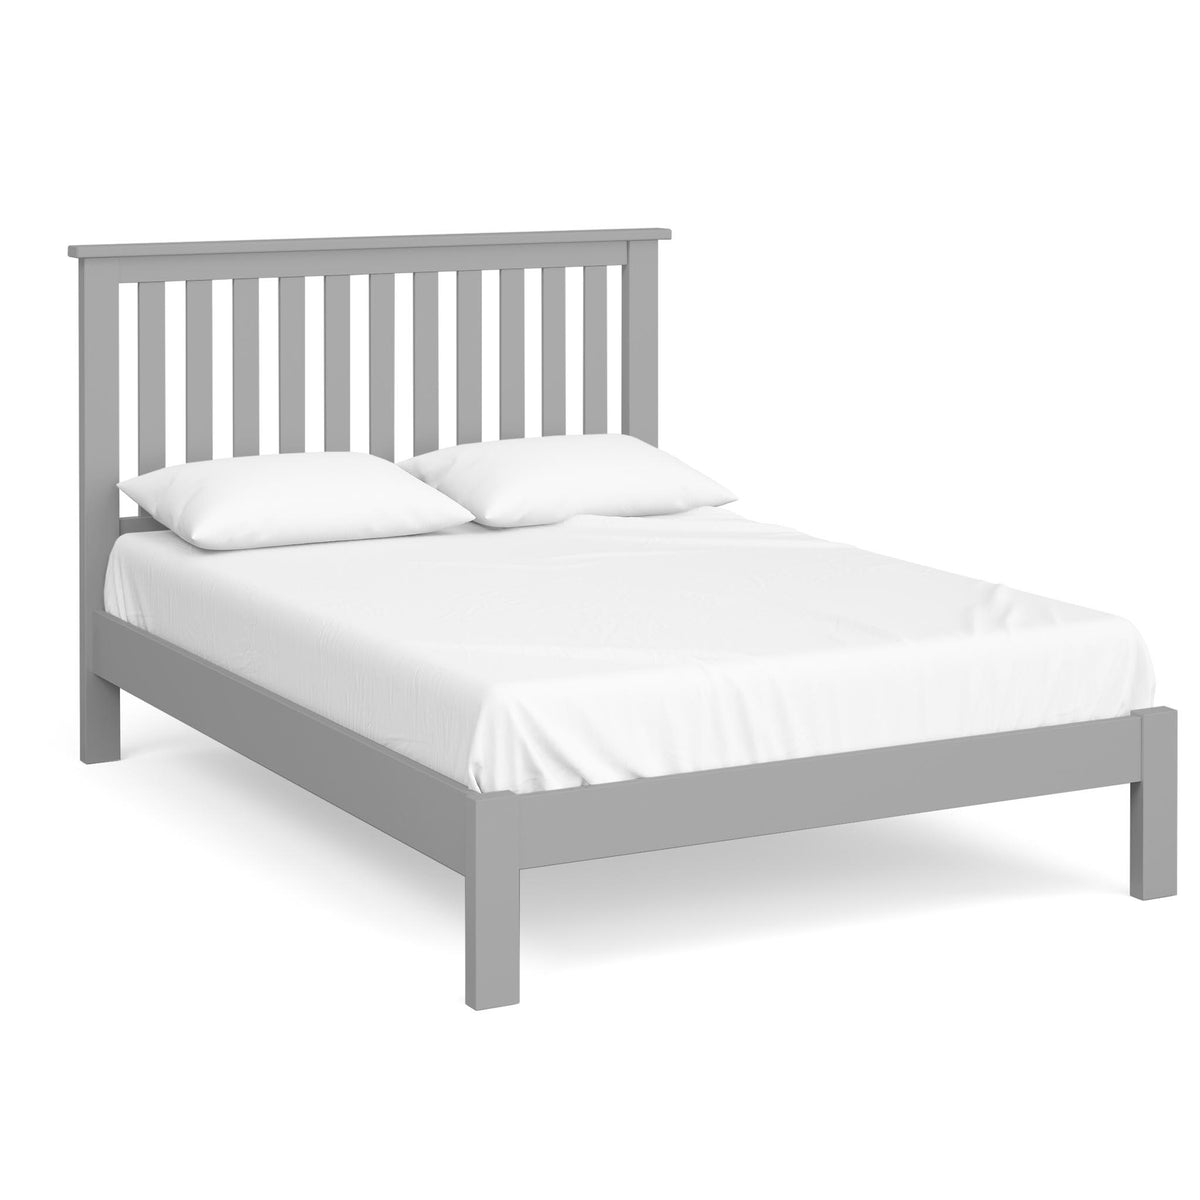 The Cornish Grey Wooden Double Bed Frame from Roseland Furniture